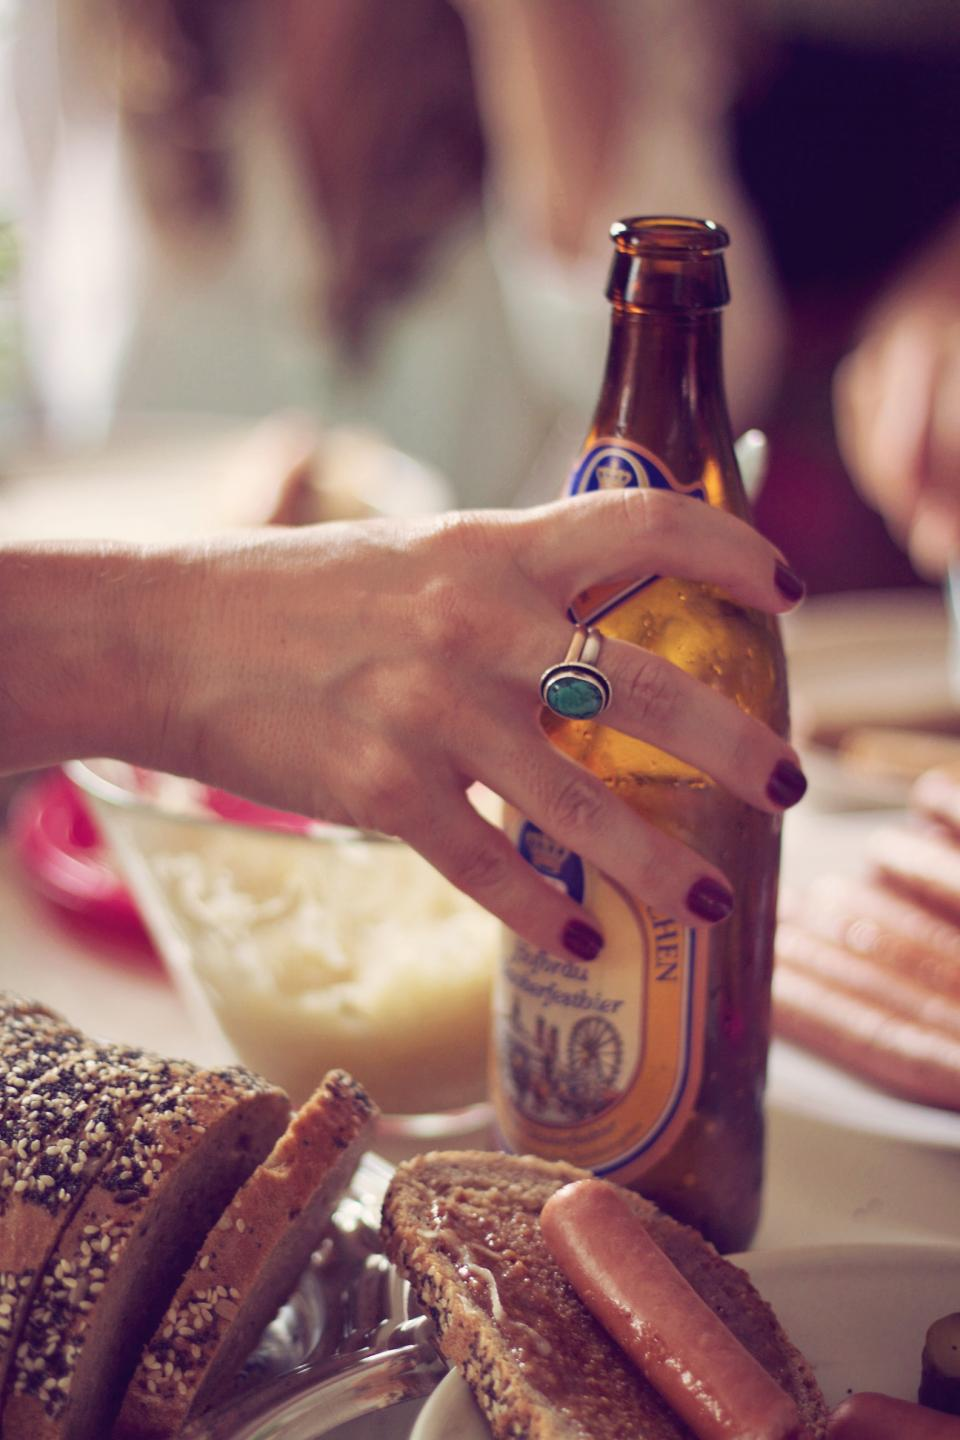 people woman hand manicure ring beer drinks beverage alcohol bread food restaurant kitchen